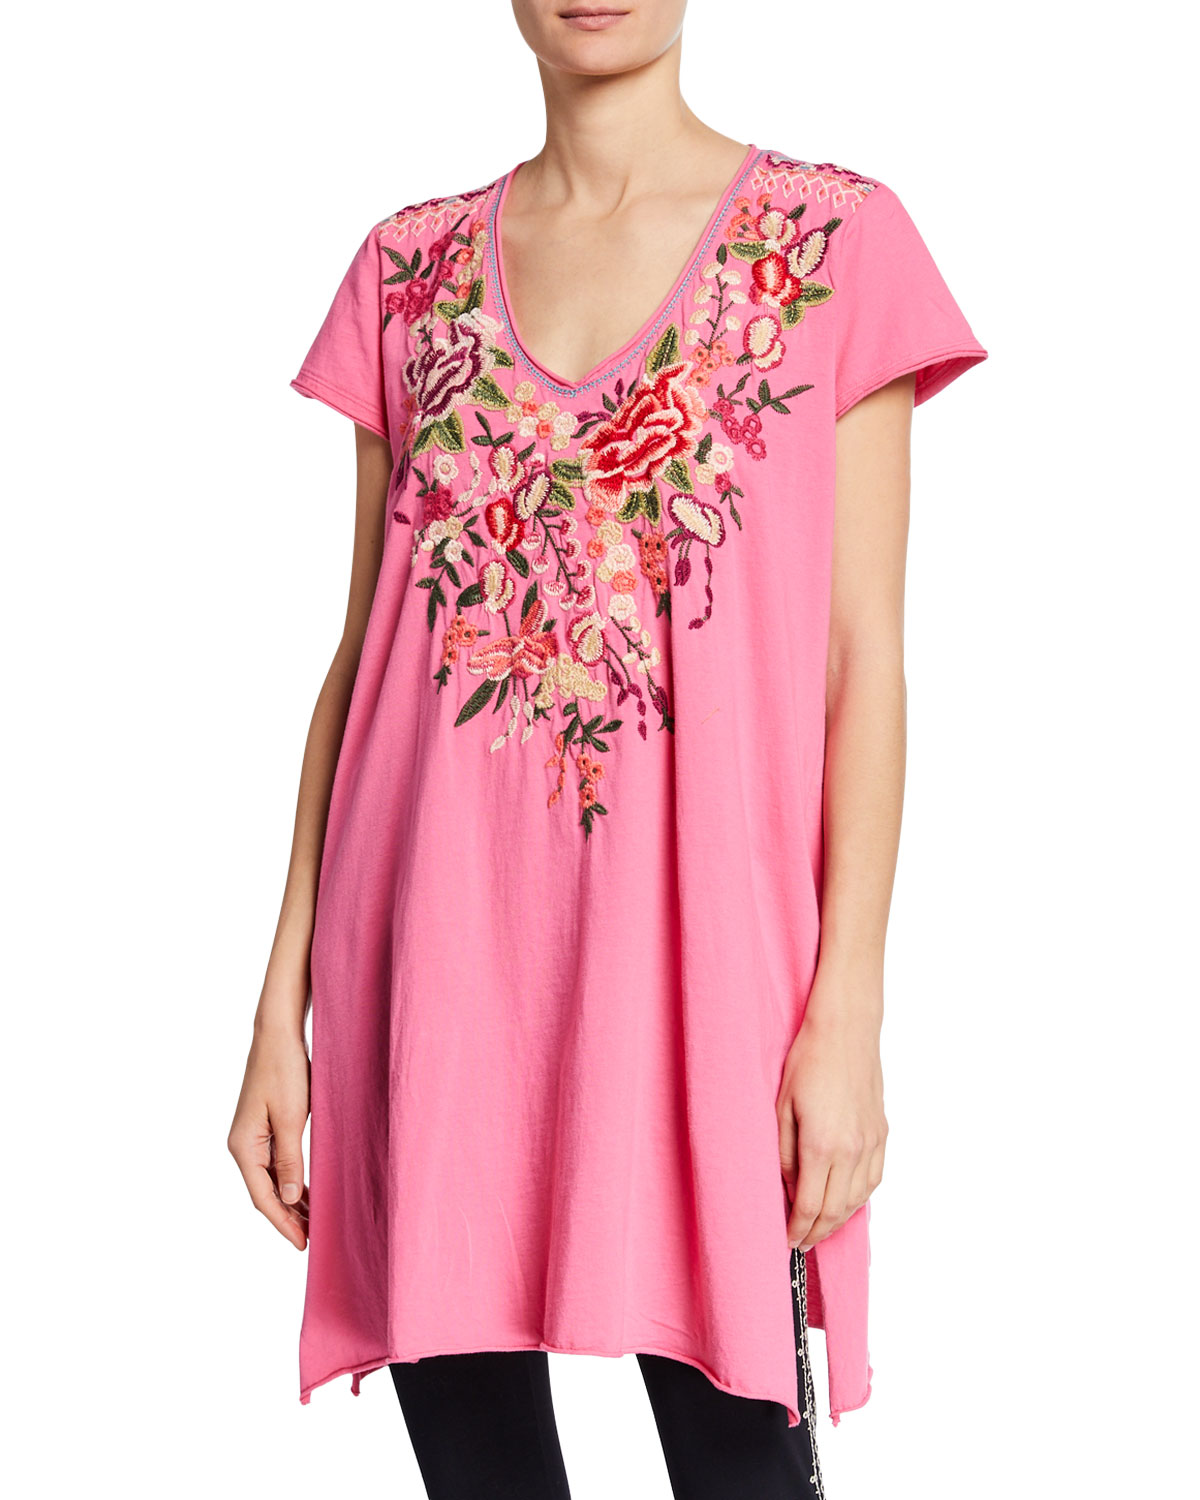 Johnny Was Samira Floral Embroidered Tunic Dress In Pink